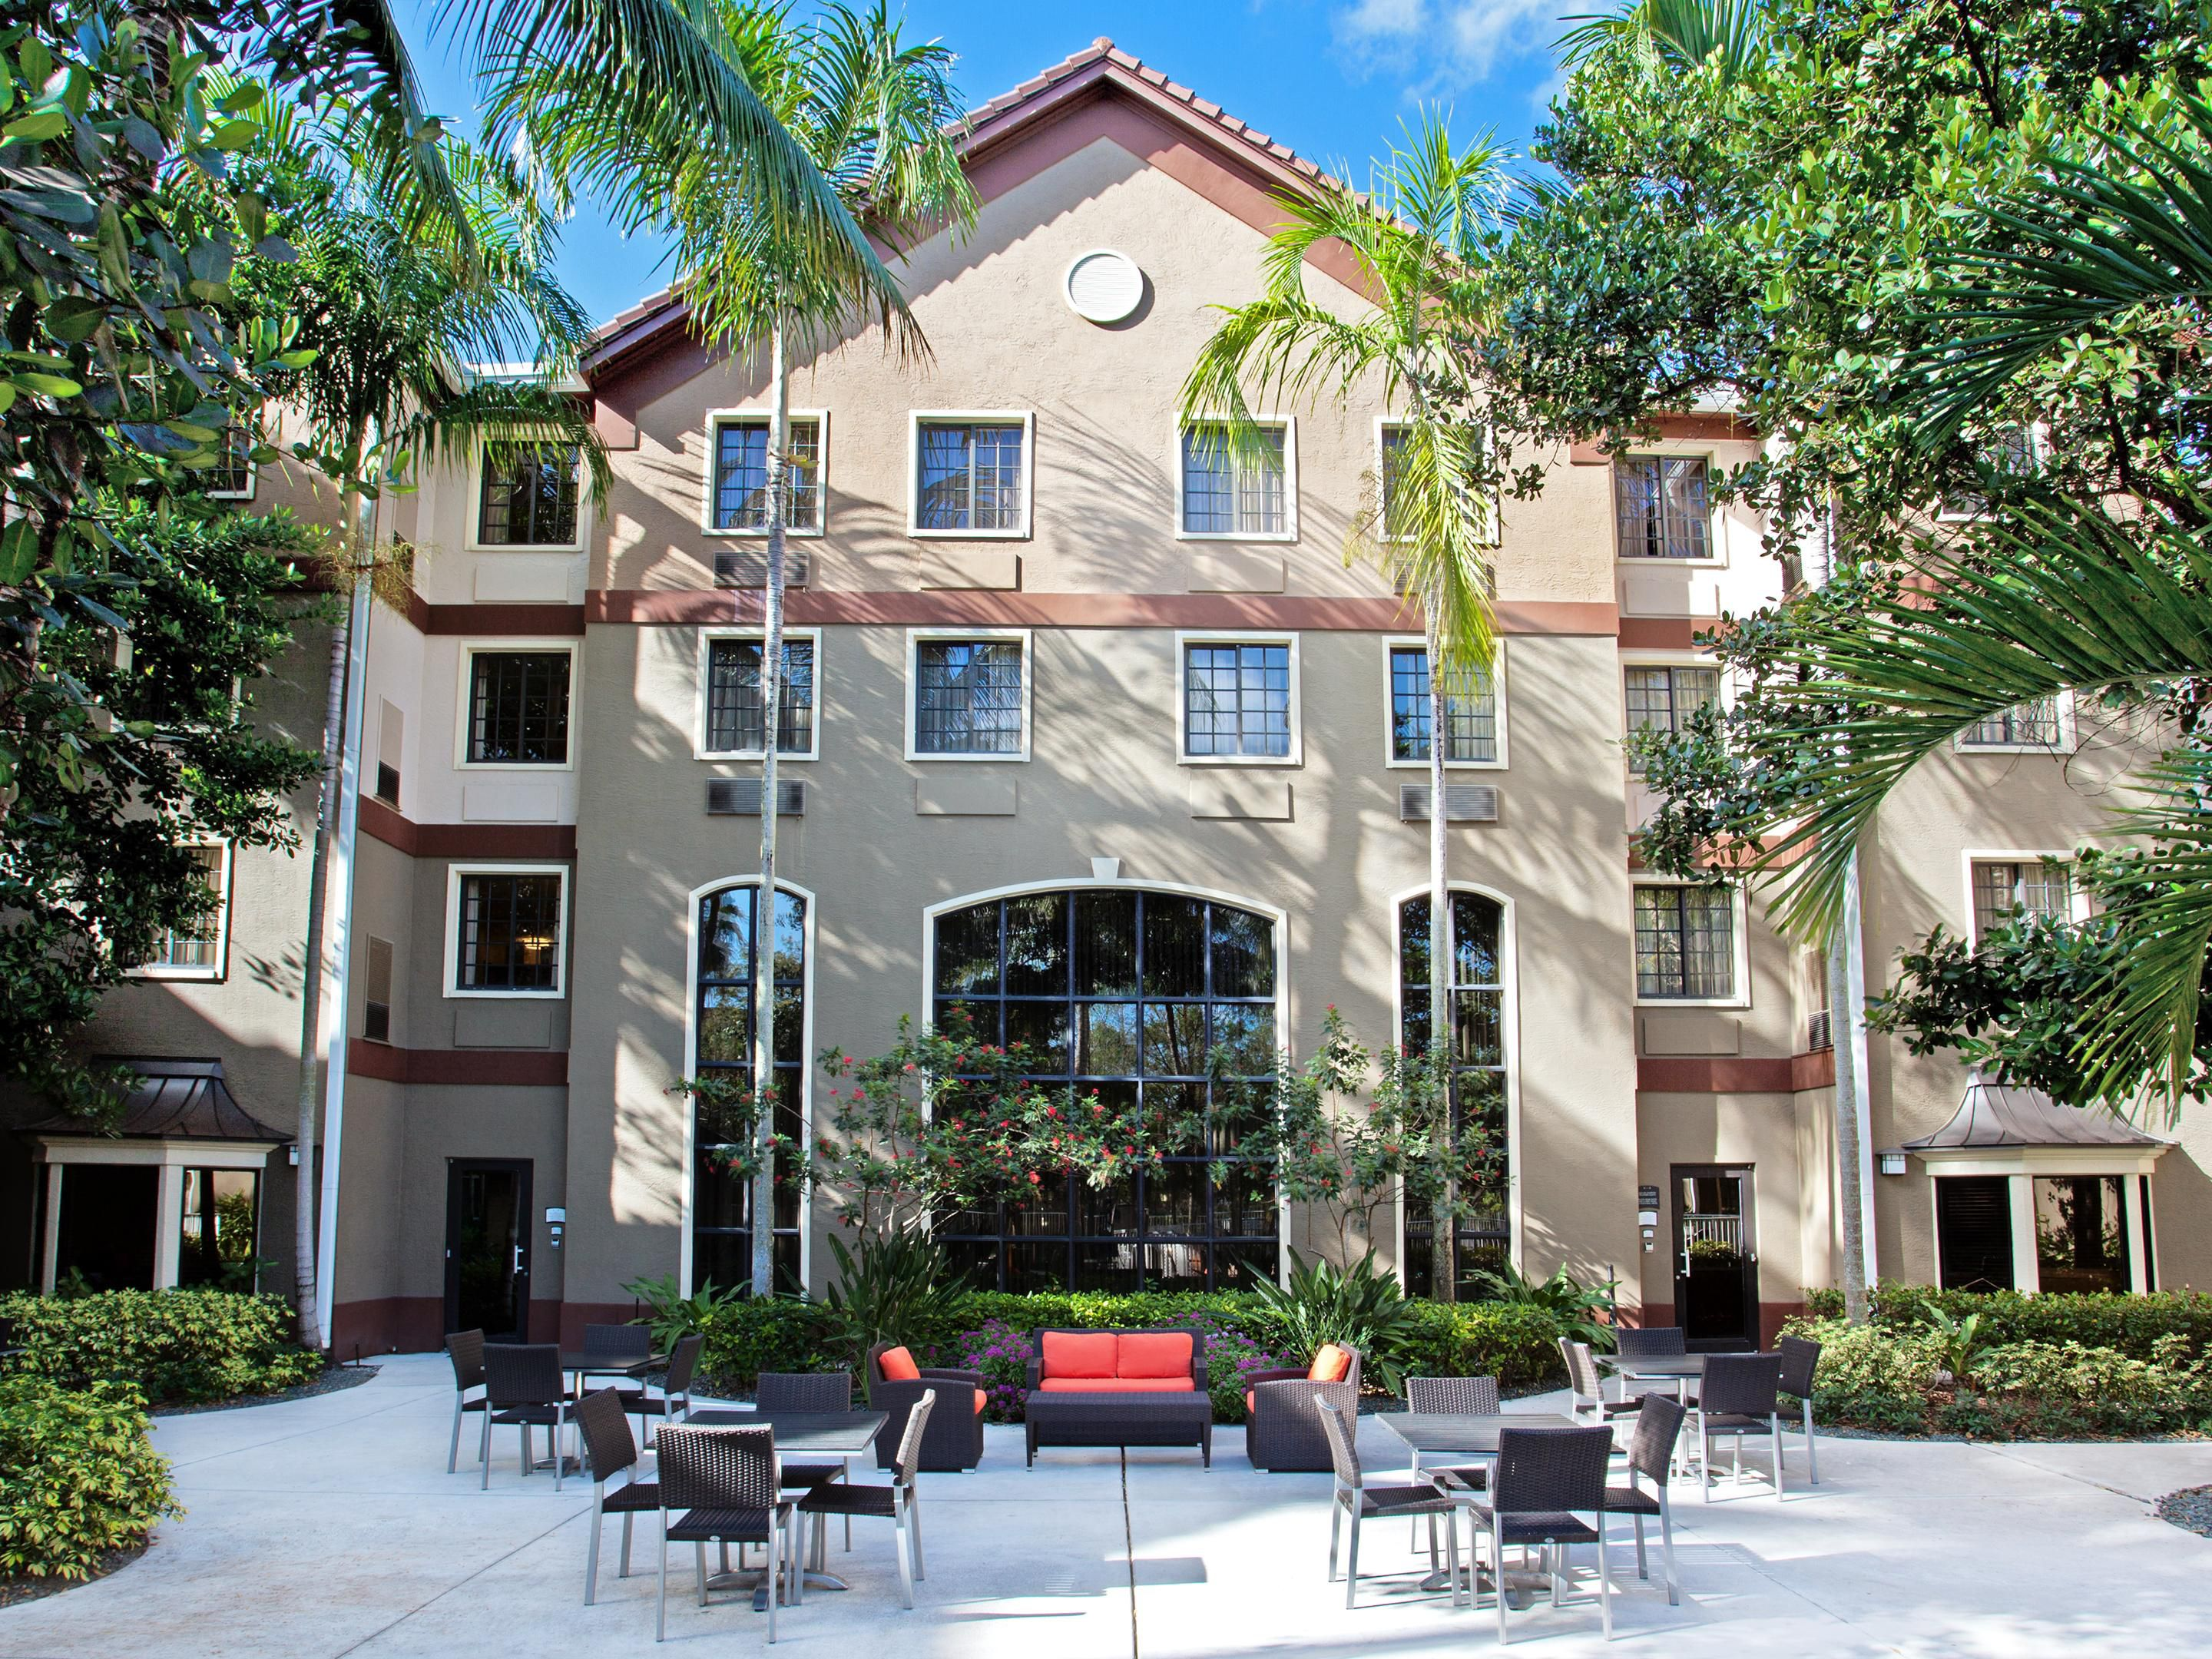 Plantation Hotels Staybridge Suites Ft Lauderdale Extended Stay Hotel In Florida